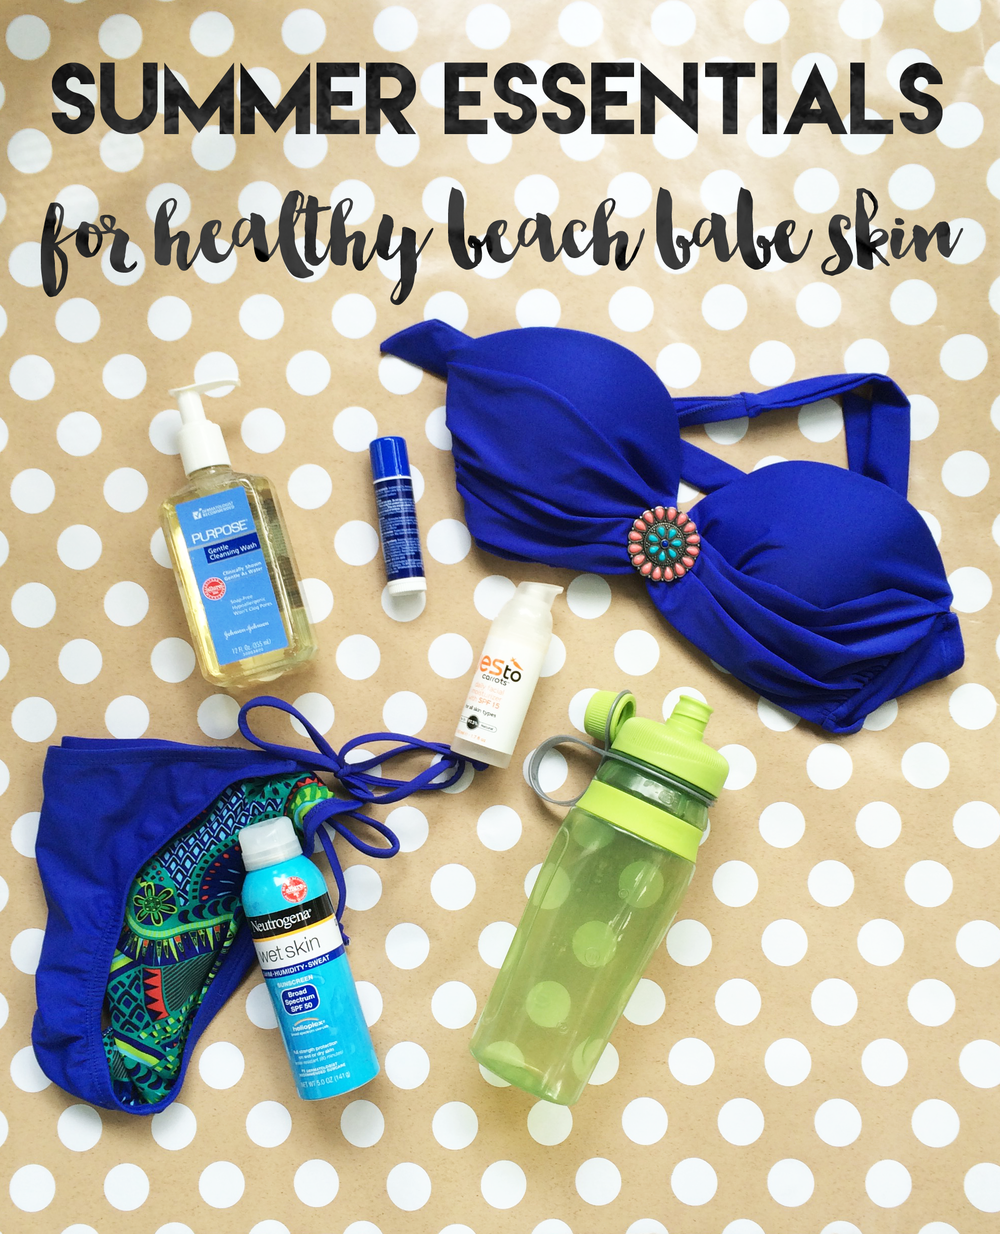 Summer Essentials For Helthy Beach Babe Skin | www.lifemodifier.com